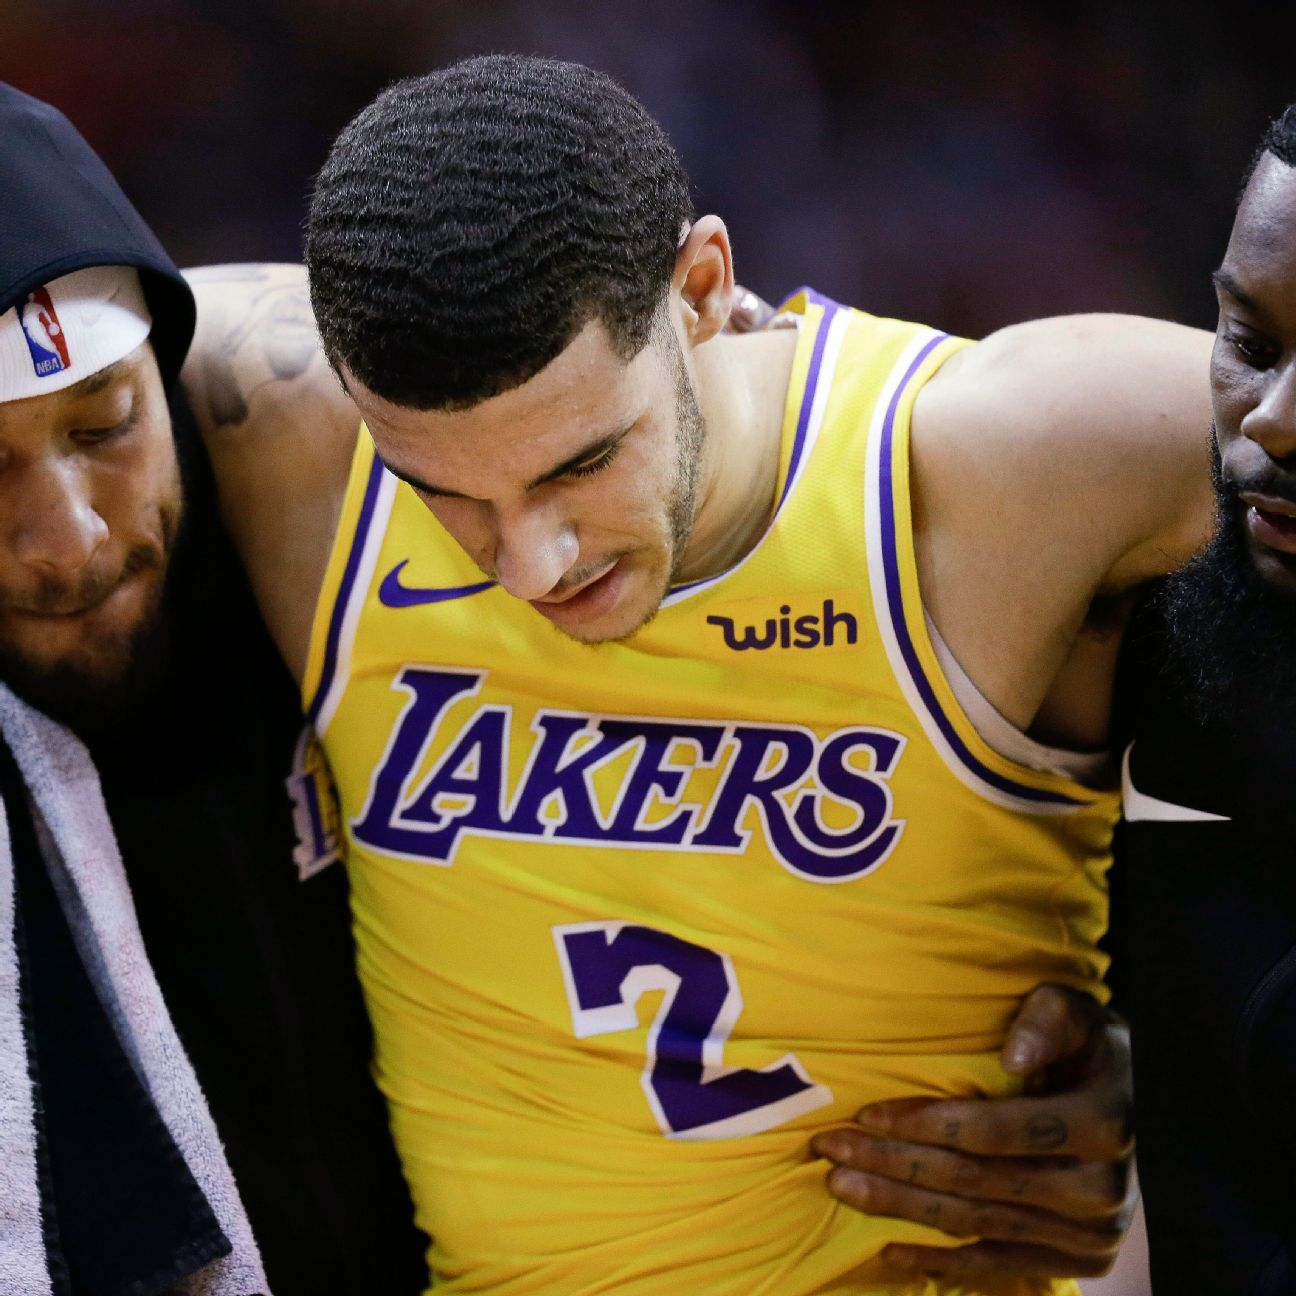 Lonzo Ball, Los Angeles Lakers point guard, sprained ankle